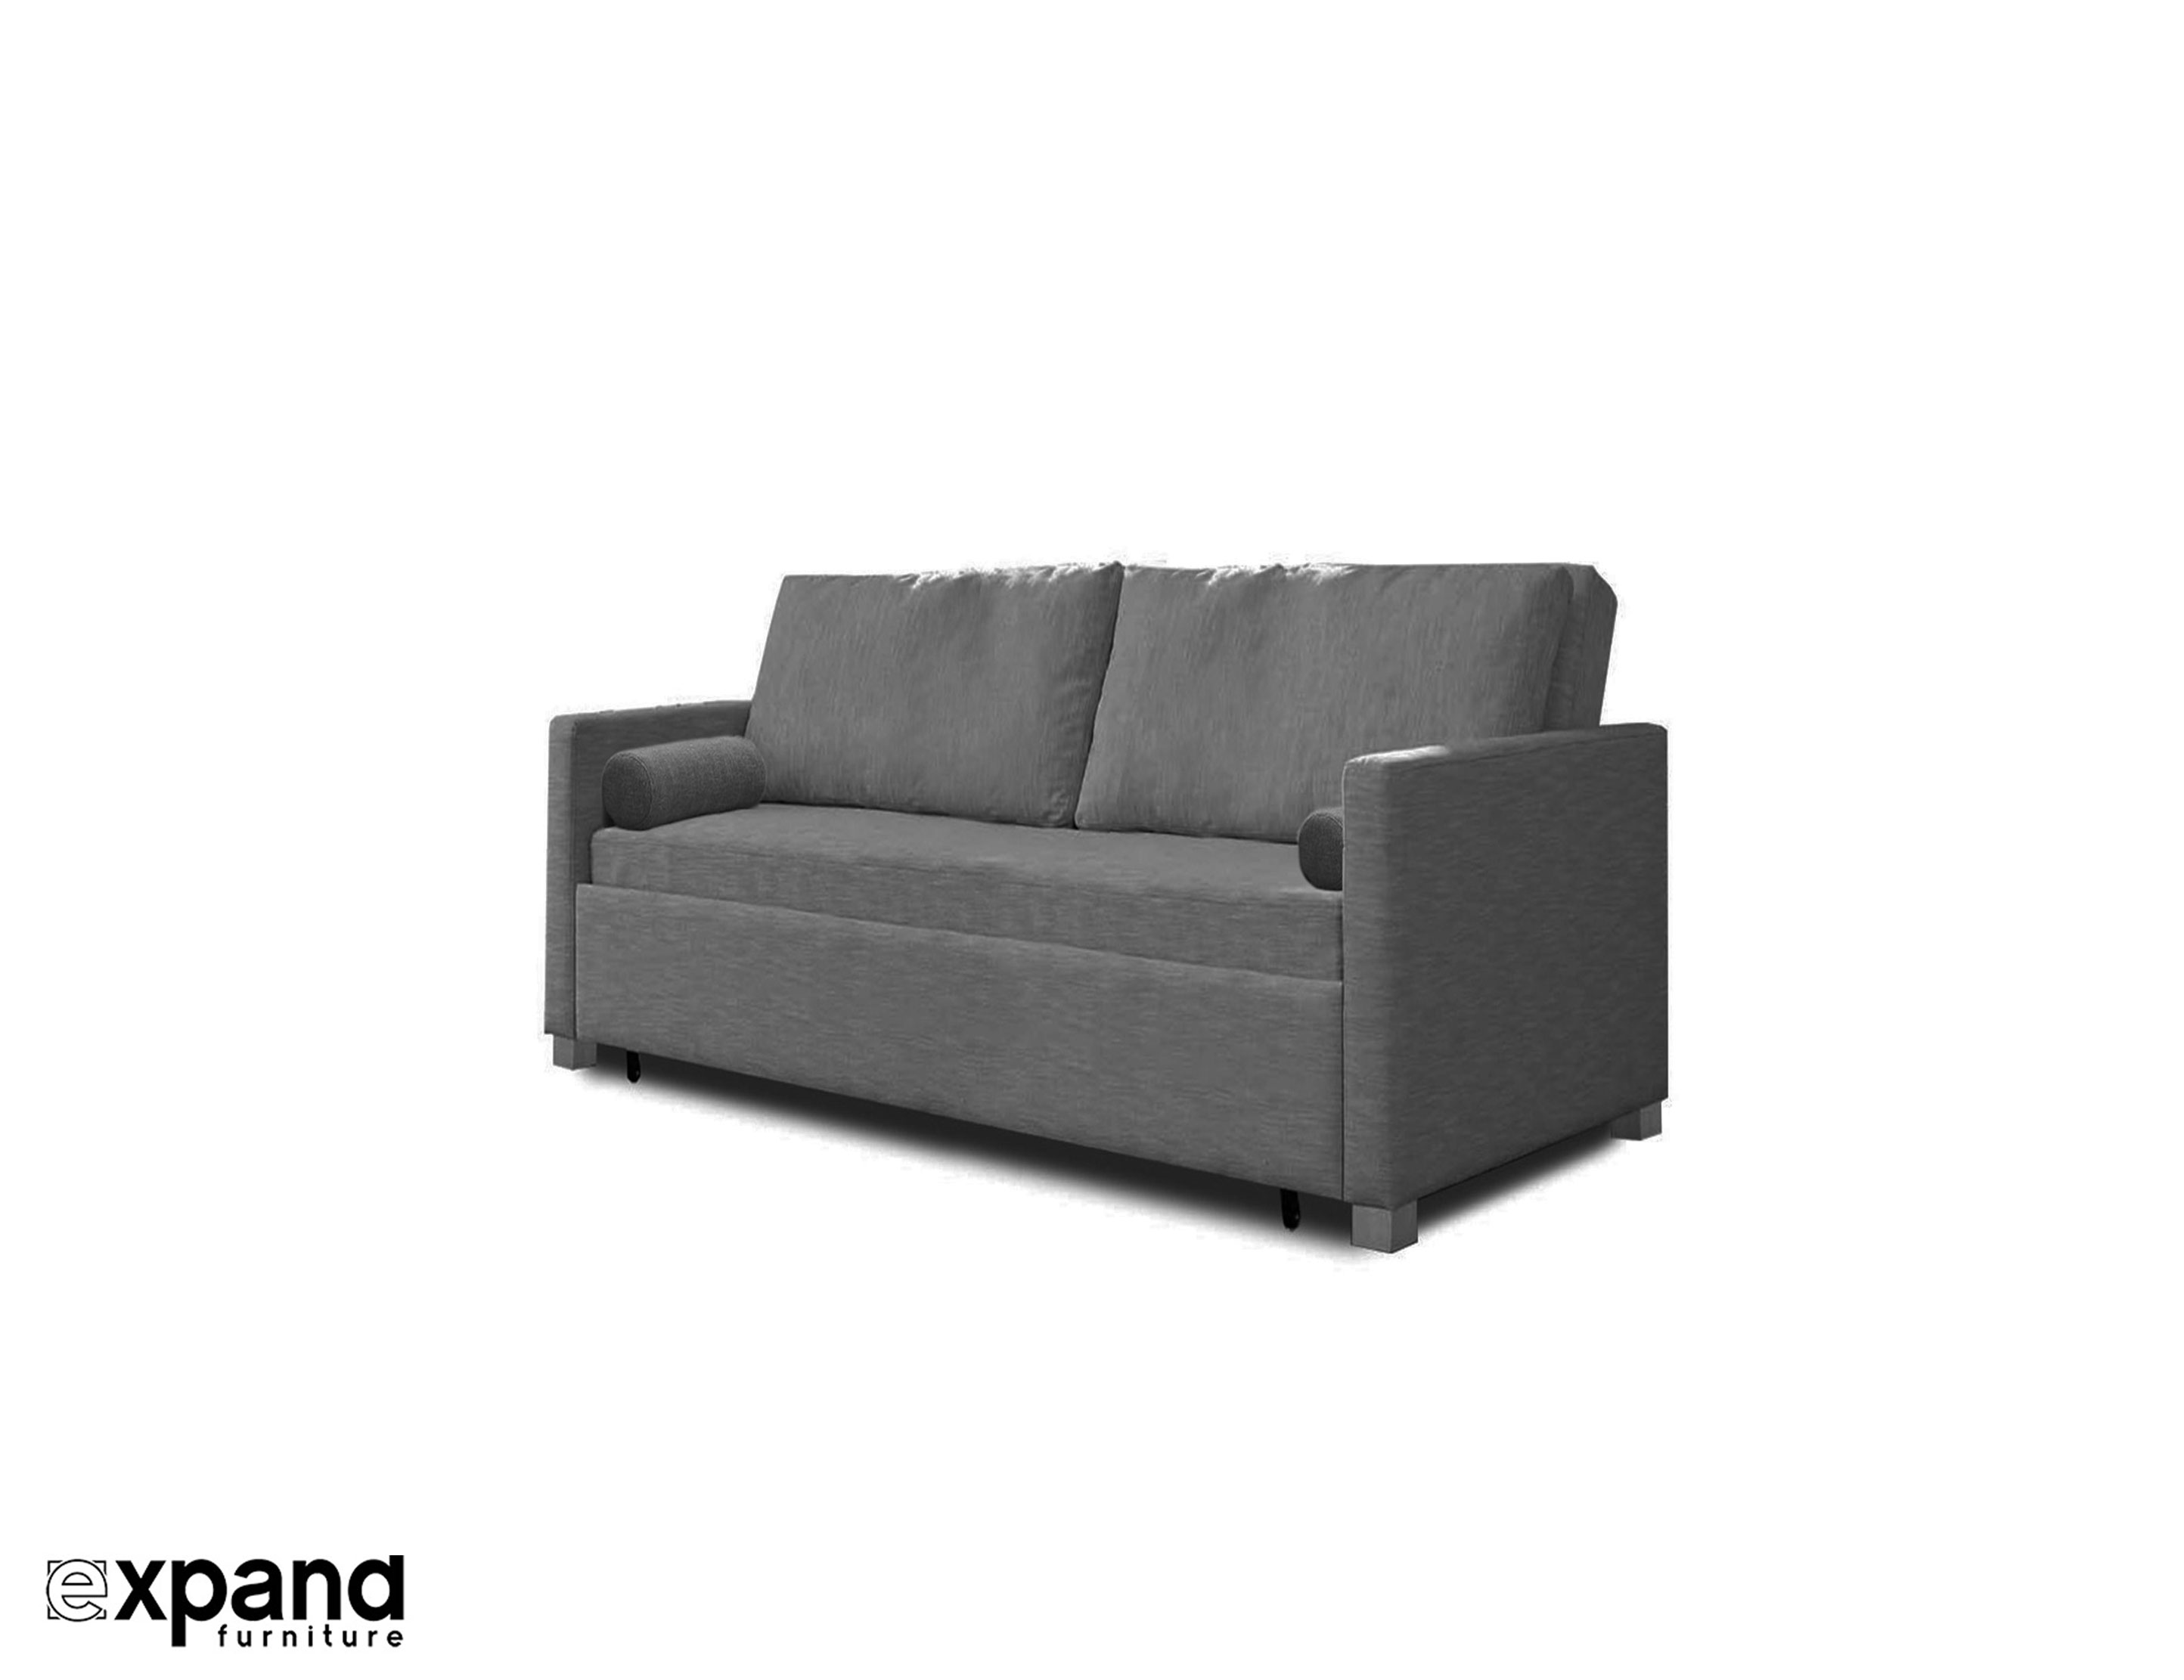 unique dietasdeadelgazar beds armchair of fabulous bed pull walmart couch fantastic out sofa